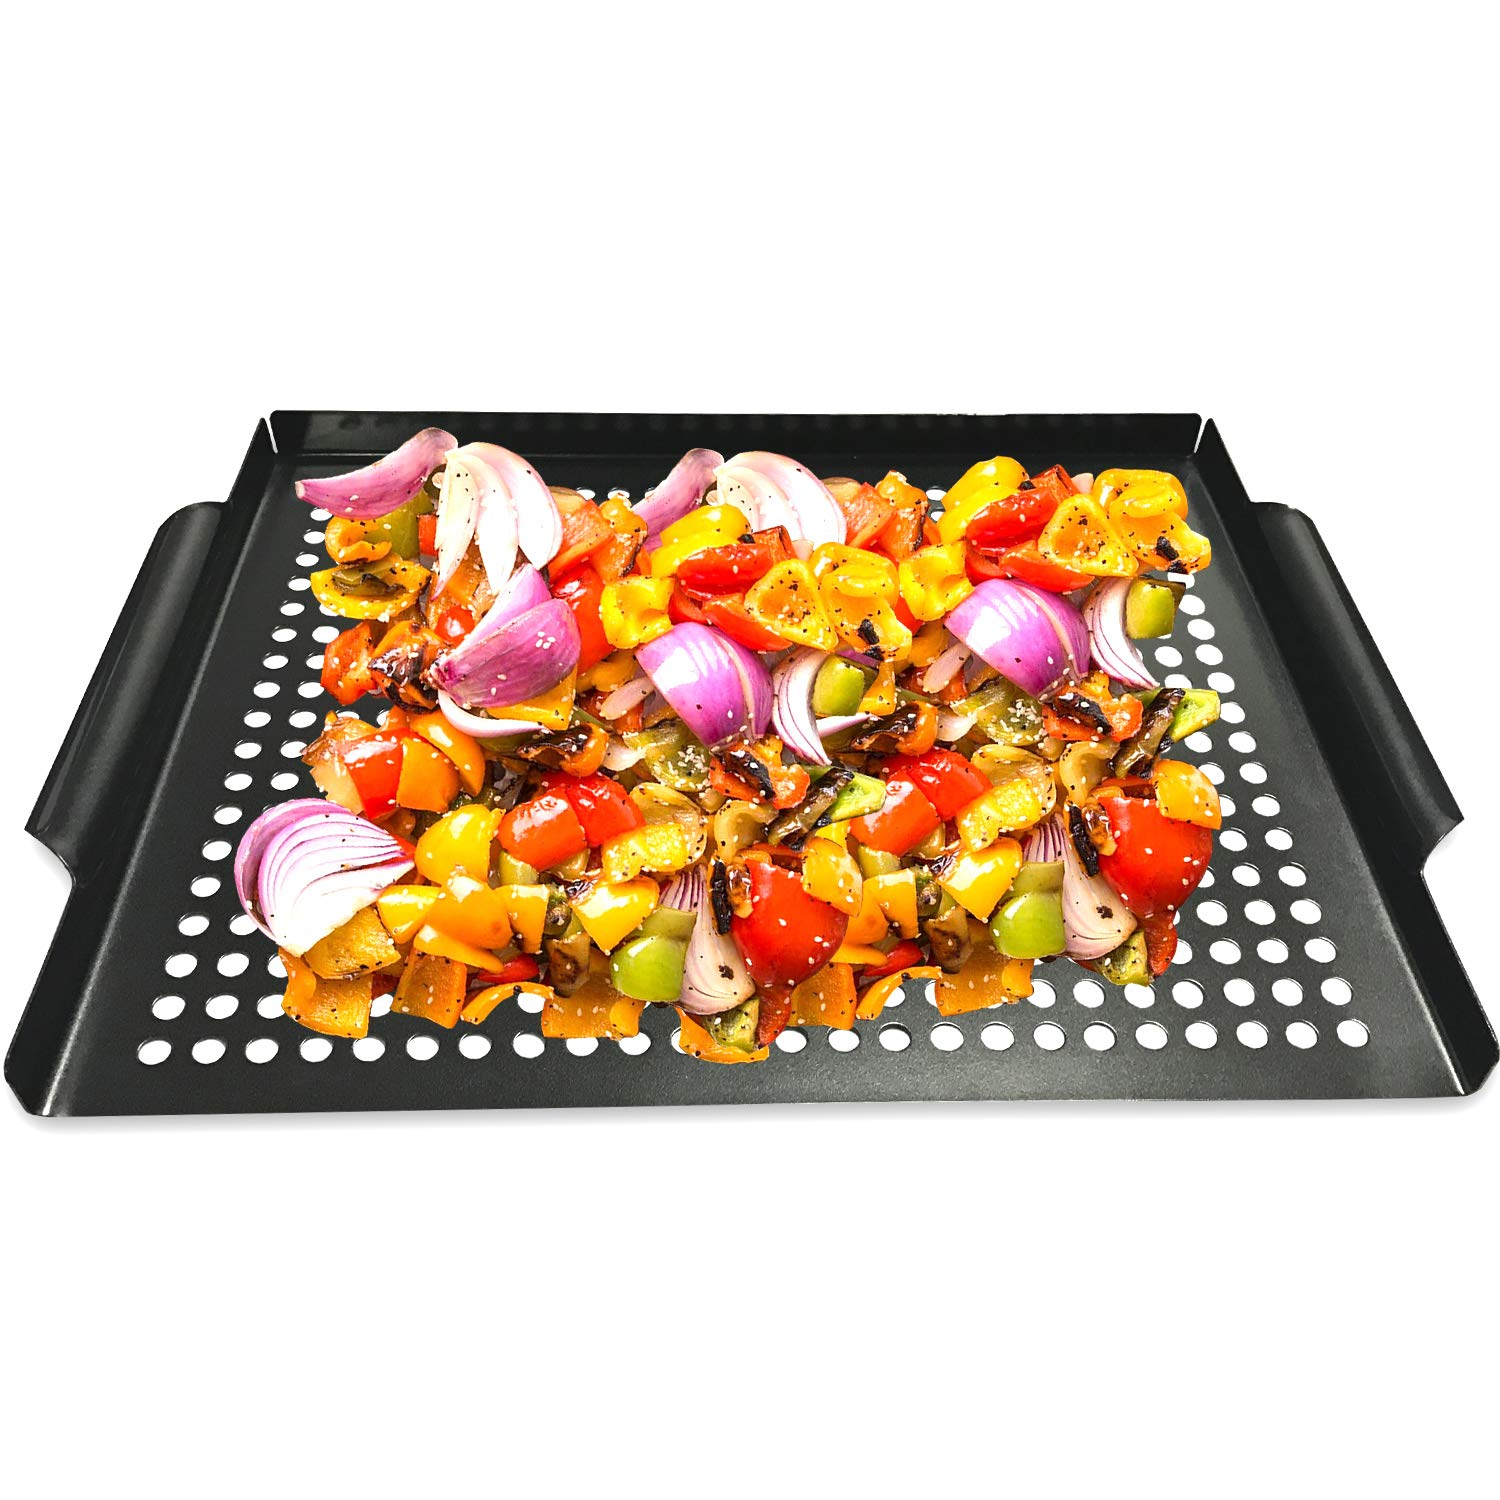 "MEHE Grill Basket, Thicken Will not Warped, Nonstick Grilling Topper 14.6""x11.4 Grill Pan BBQ Accessory for Grilling Vegetable, Fish, Shrimp, Meat, Camping Cookware"